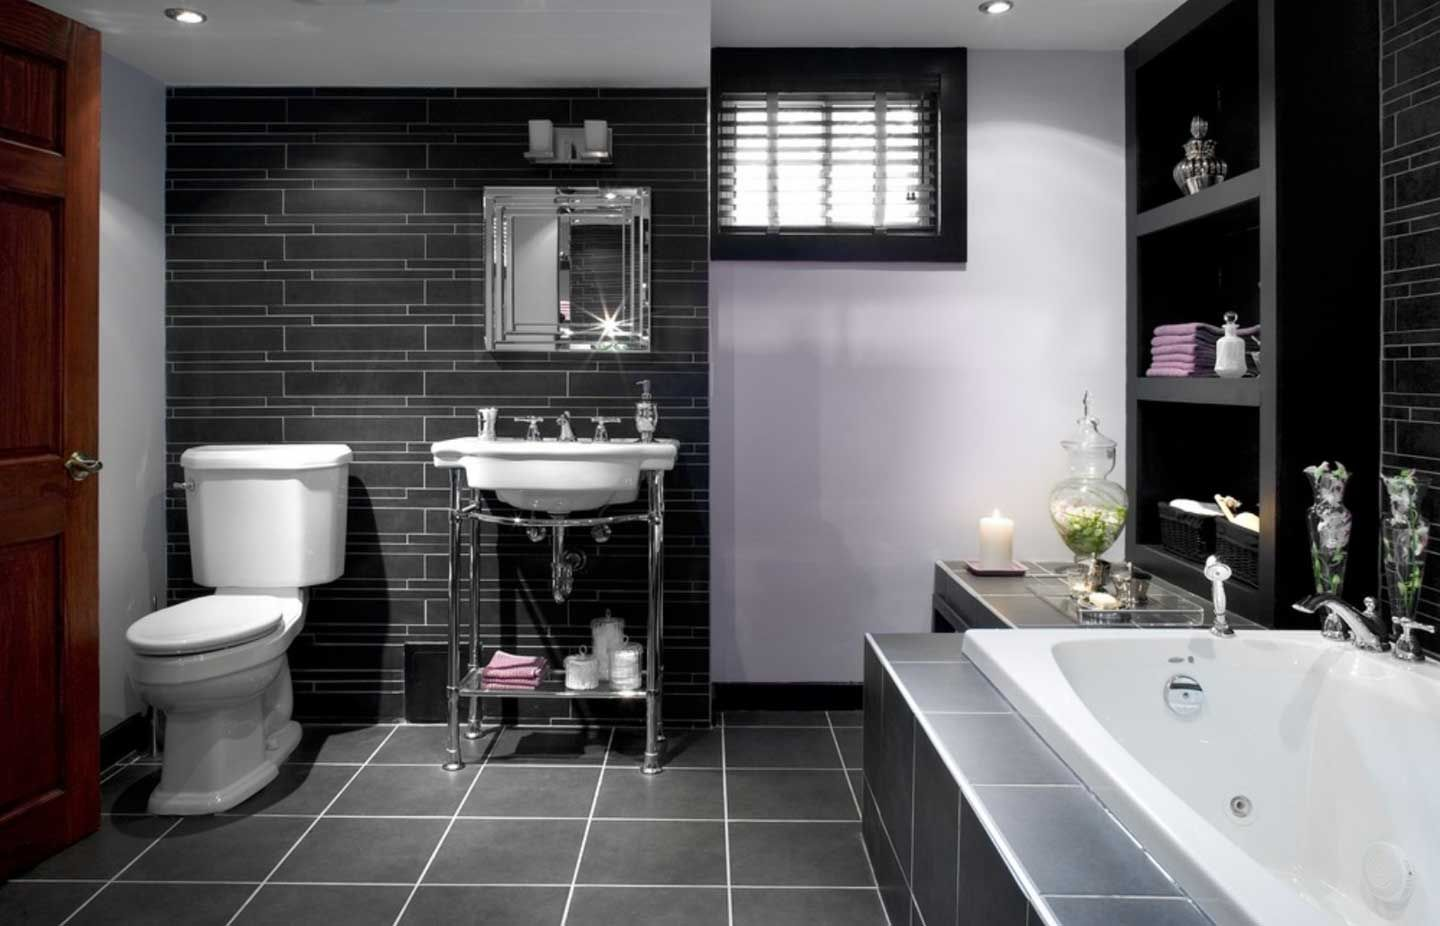 Interior New Bathroom Designs modern new bathroom design ideas for spa style interior decorating with loveable sink and